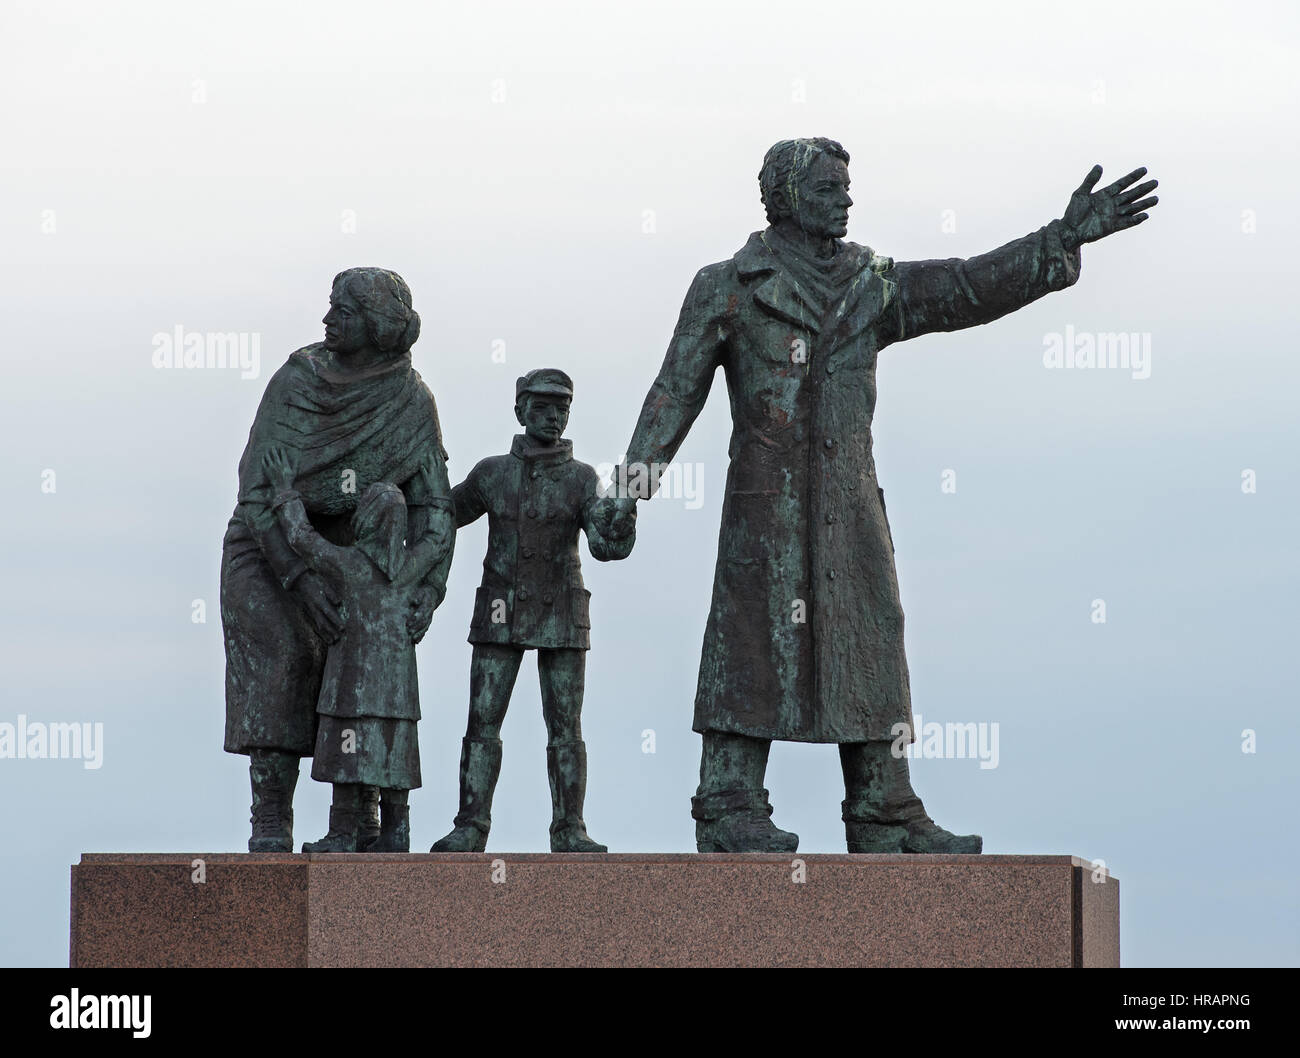 A bronze sculpture in the form of a young emigrant family as the 'Auswandererdenkmal' (lt.emigration monument) - Stock Image